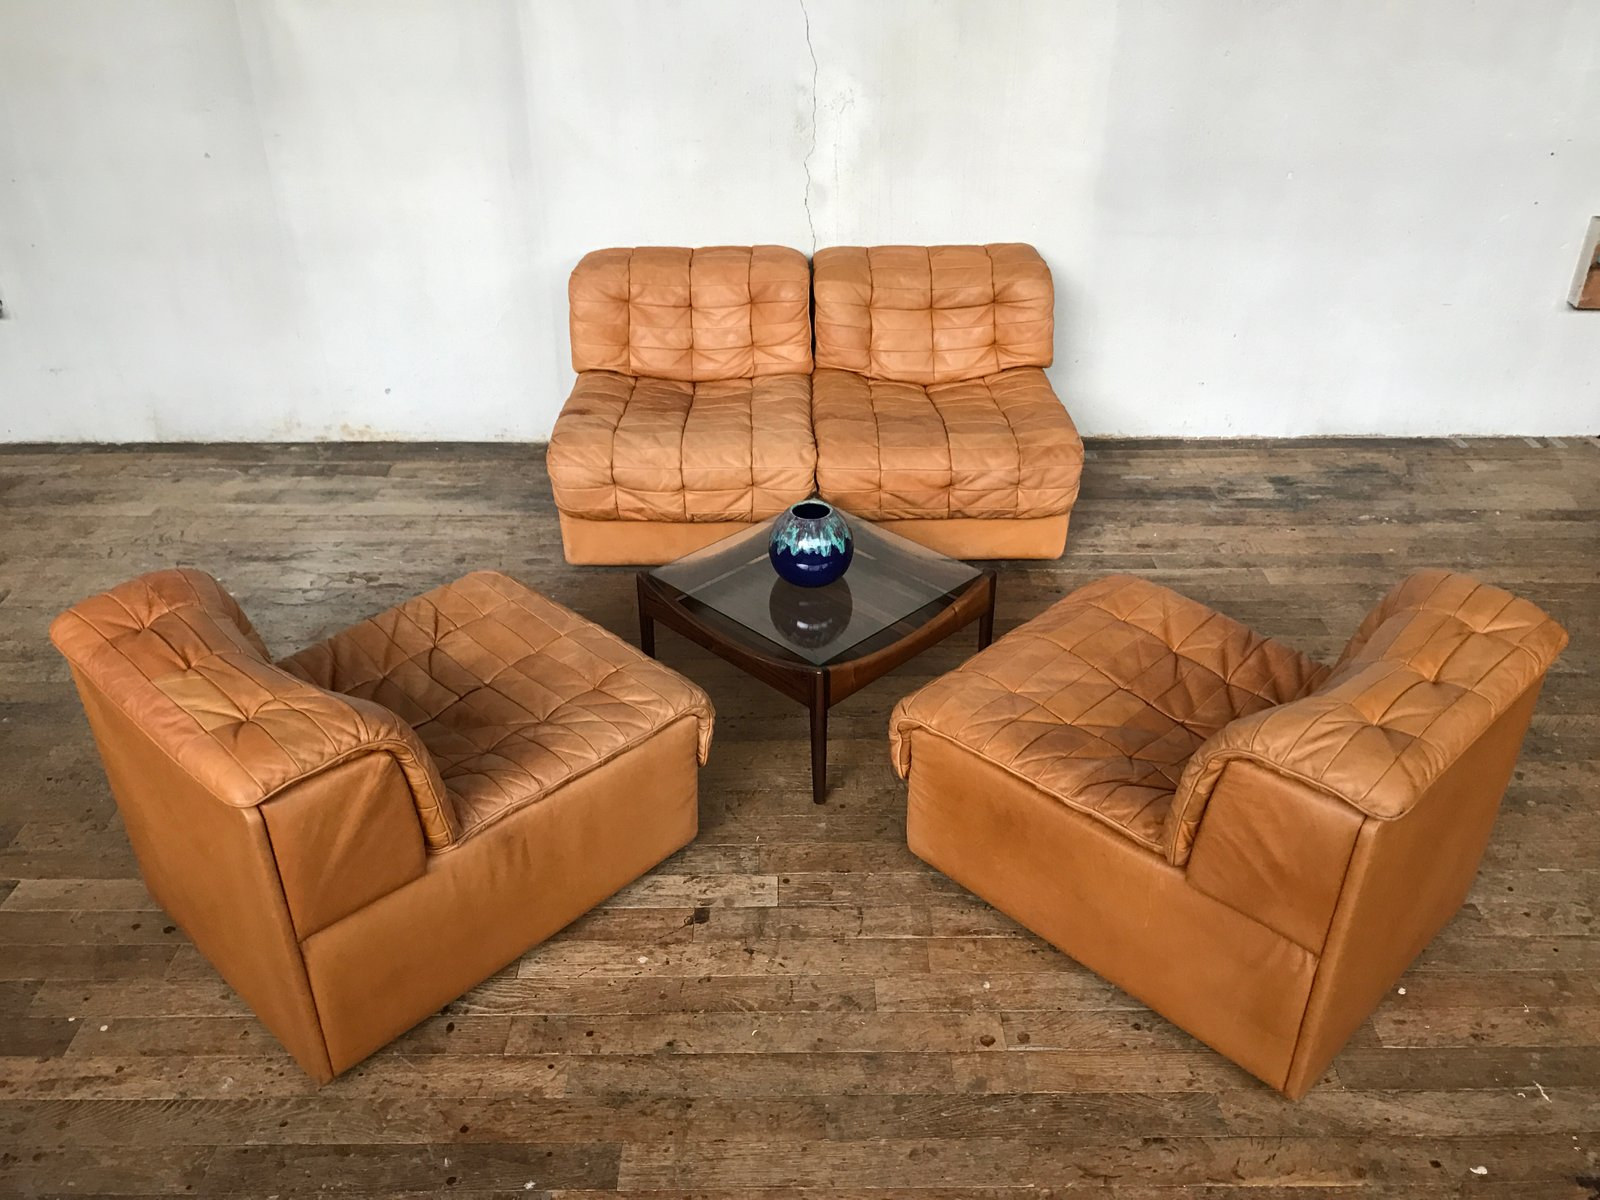 Vintage Modular Swiss DS 11 Leather Sofa from de Sede for sale at